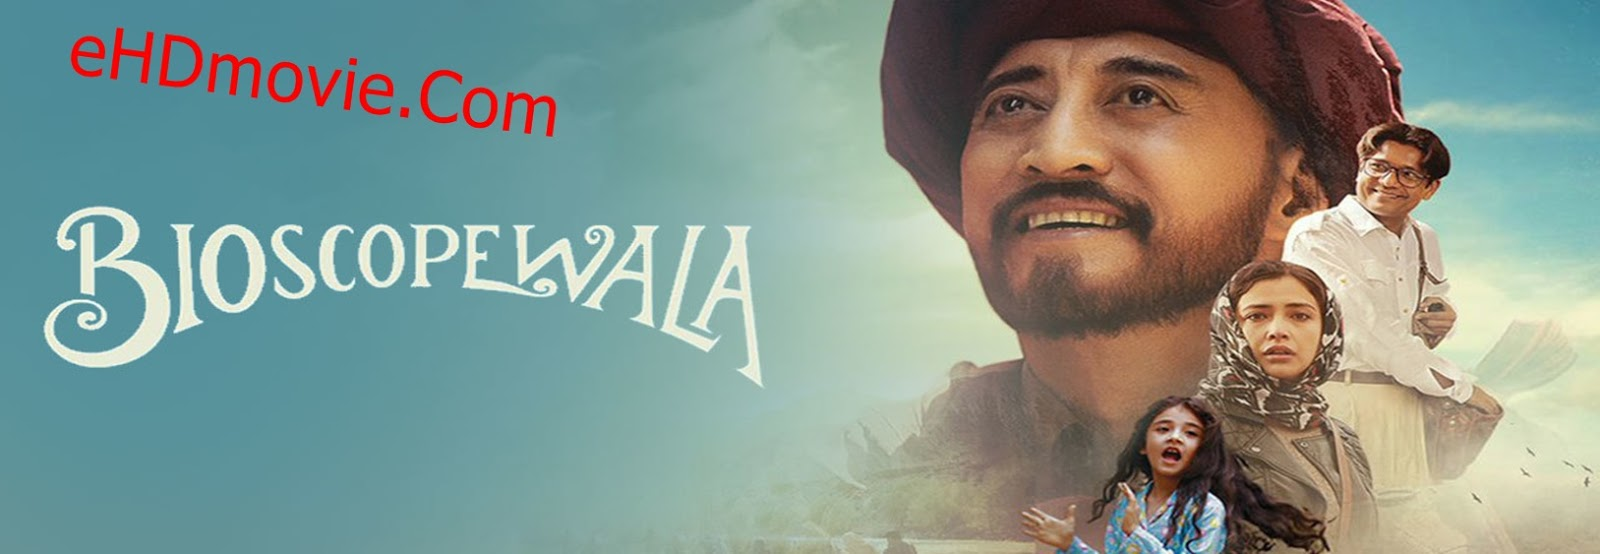 Bioscopewala 2018 Full Movie Hindi 720p - 480p ORG WEB-DL 250MB - 850MB ESubs Free Download